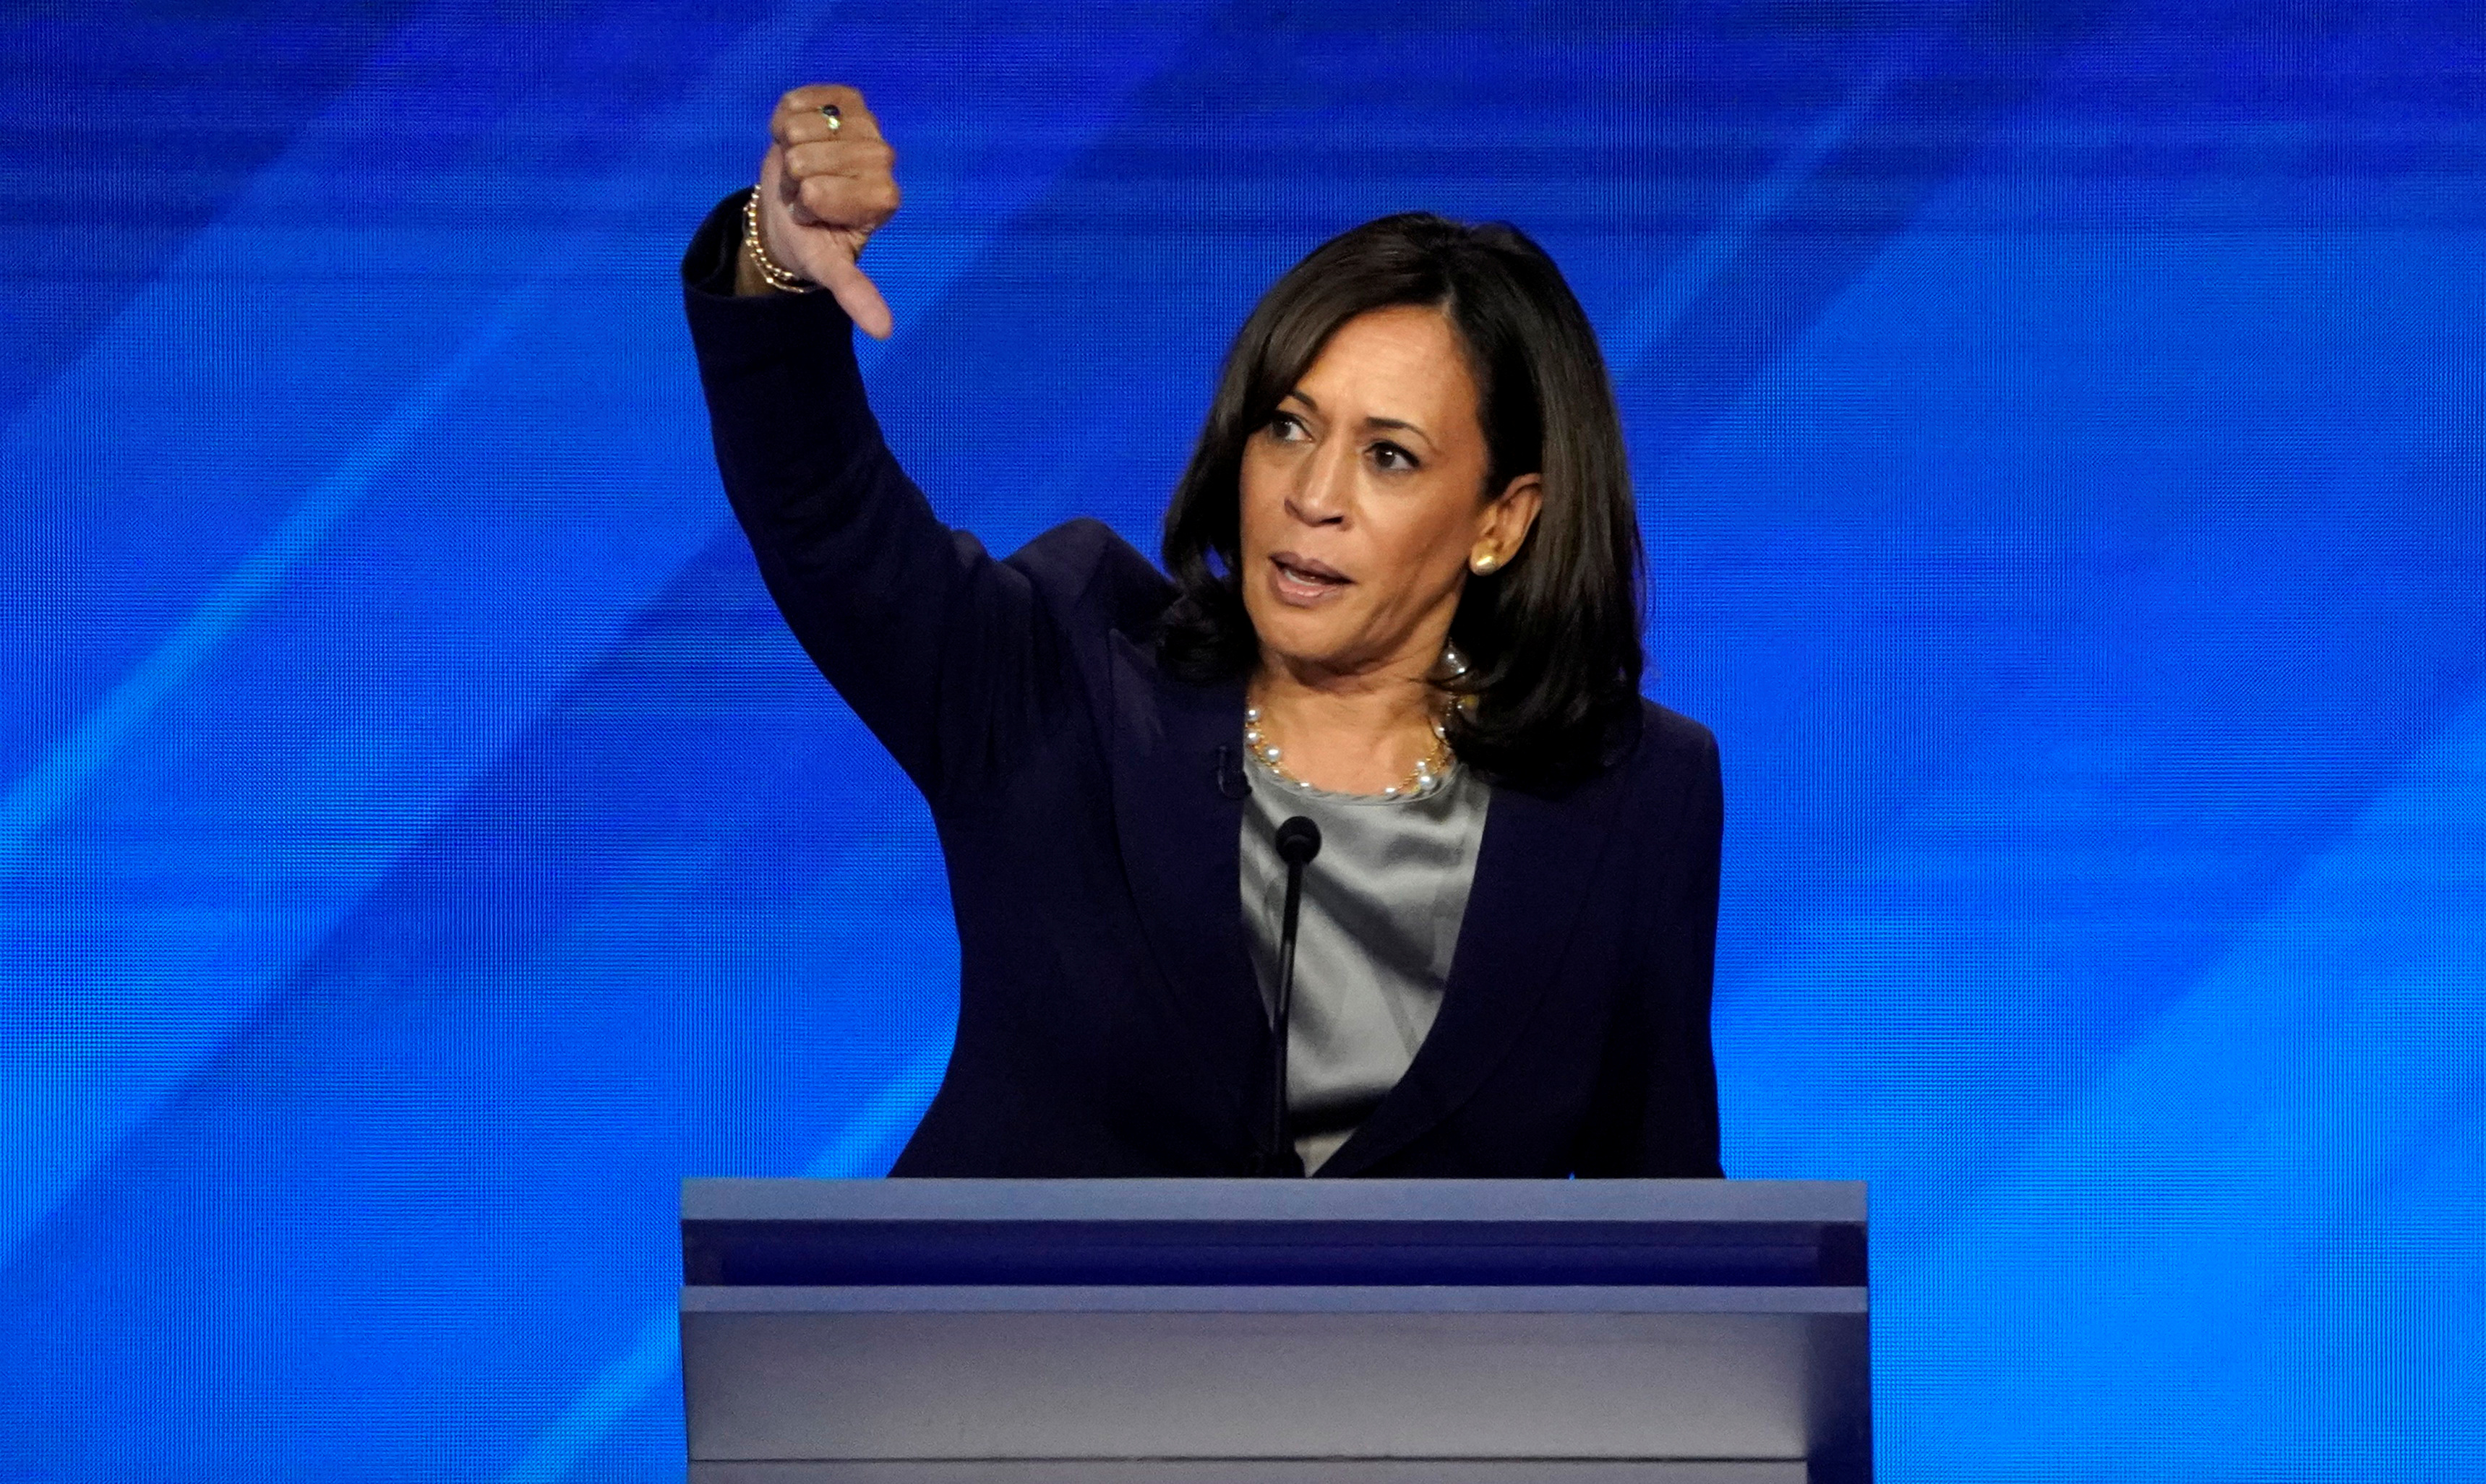 2020 Vision Thursday: Why Kamala Harris is struggling in the polls